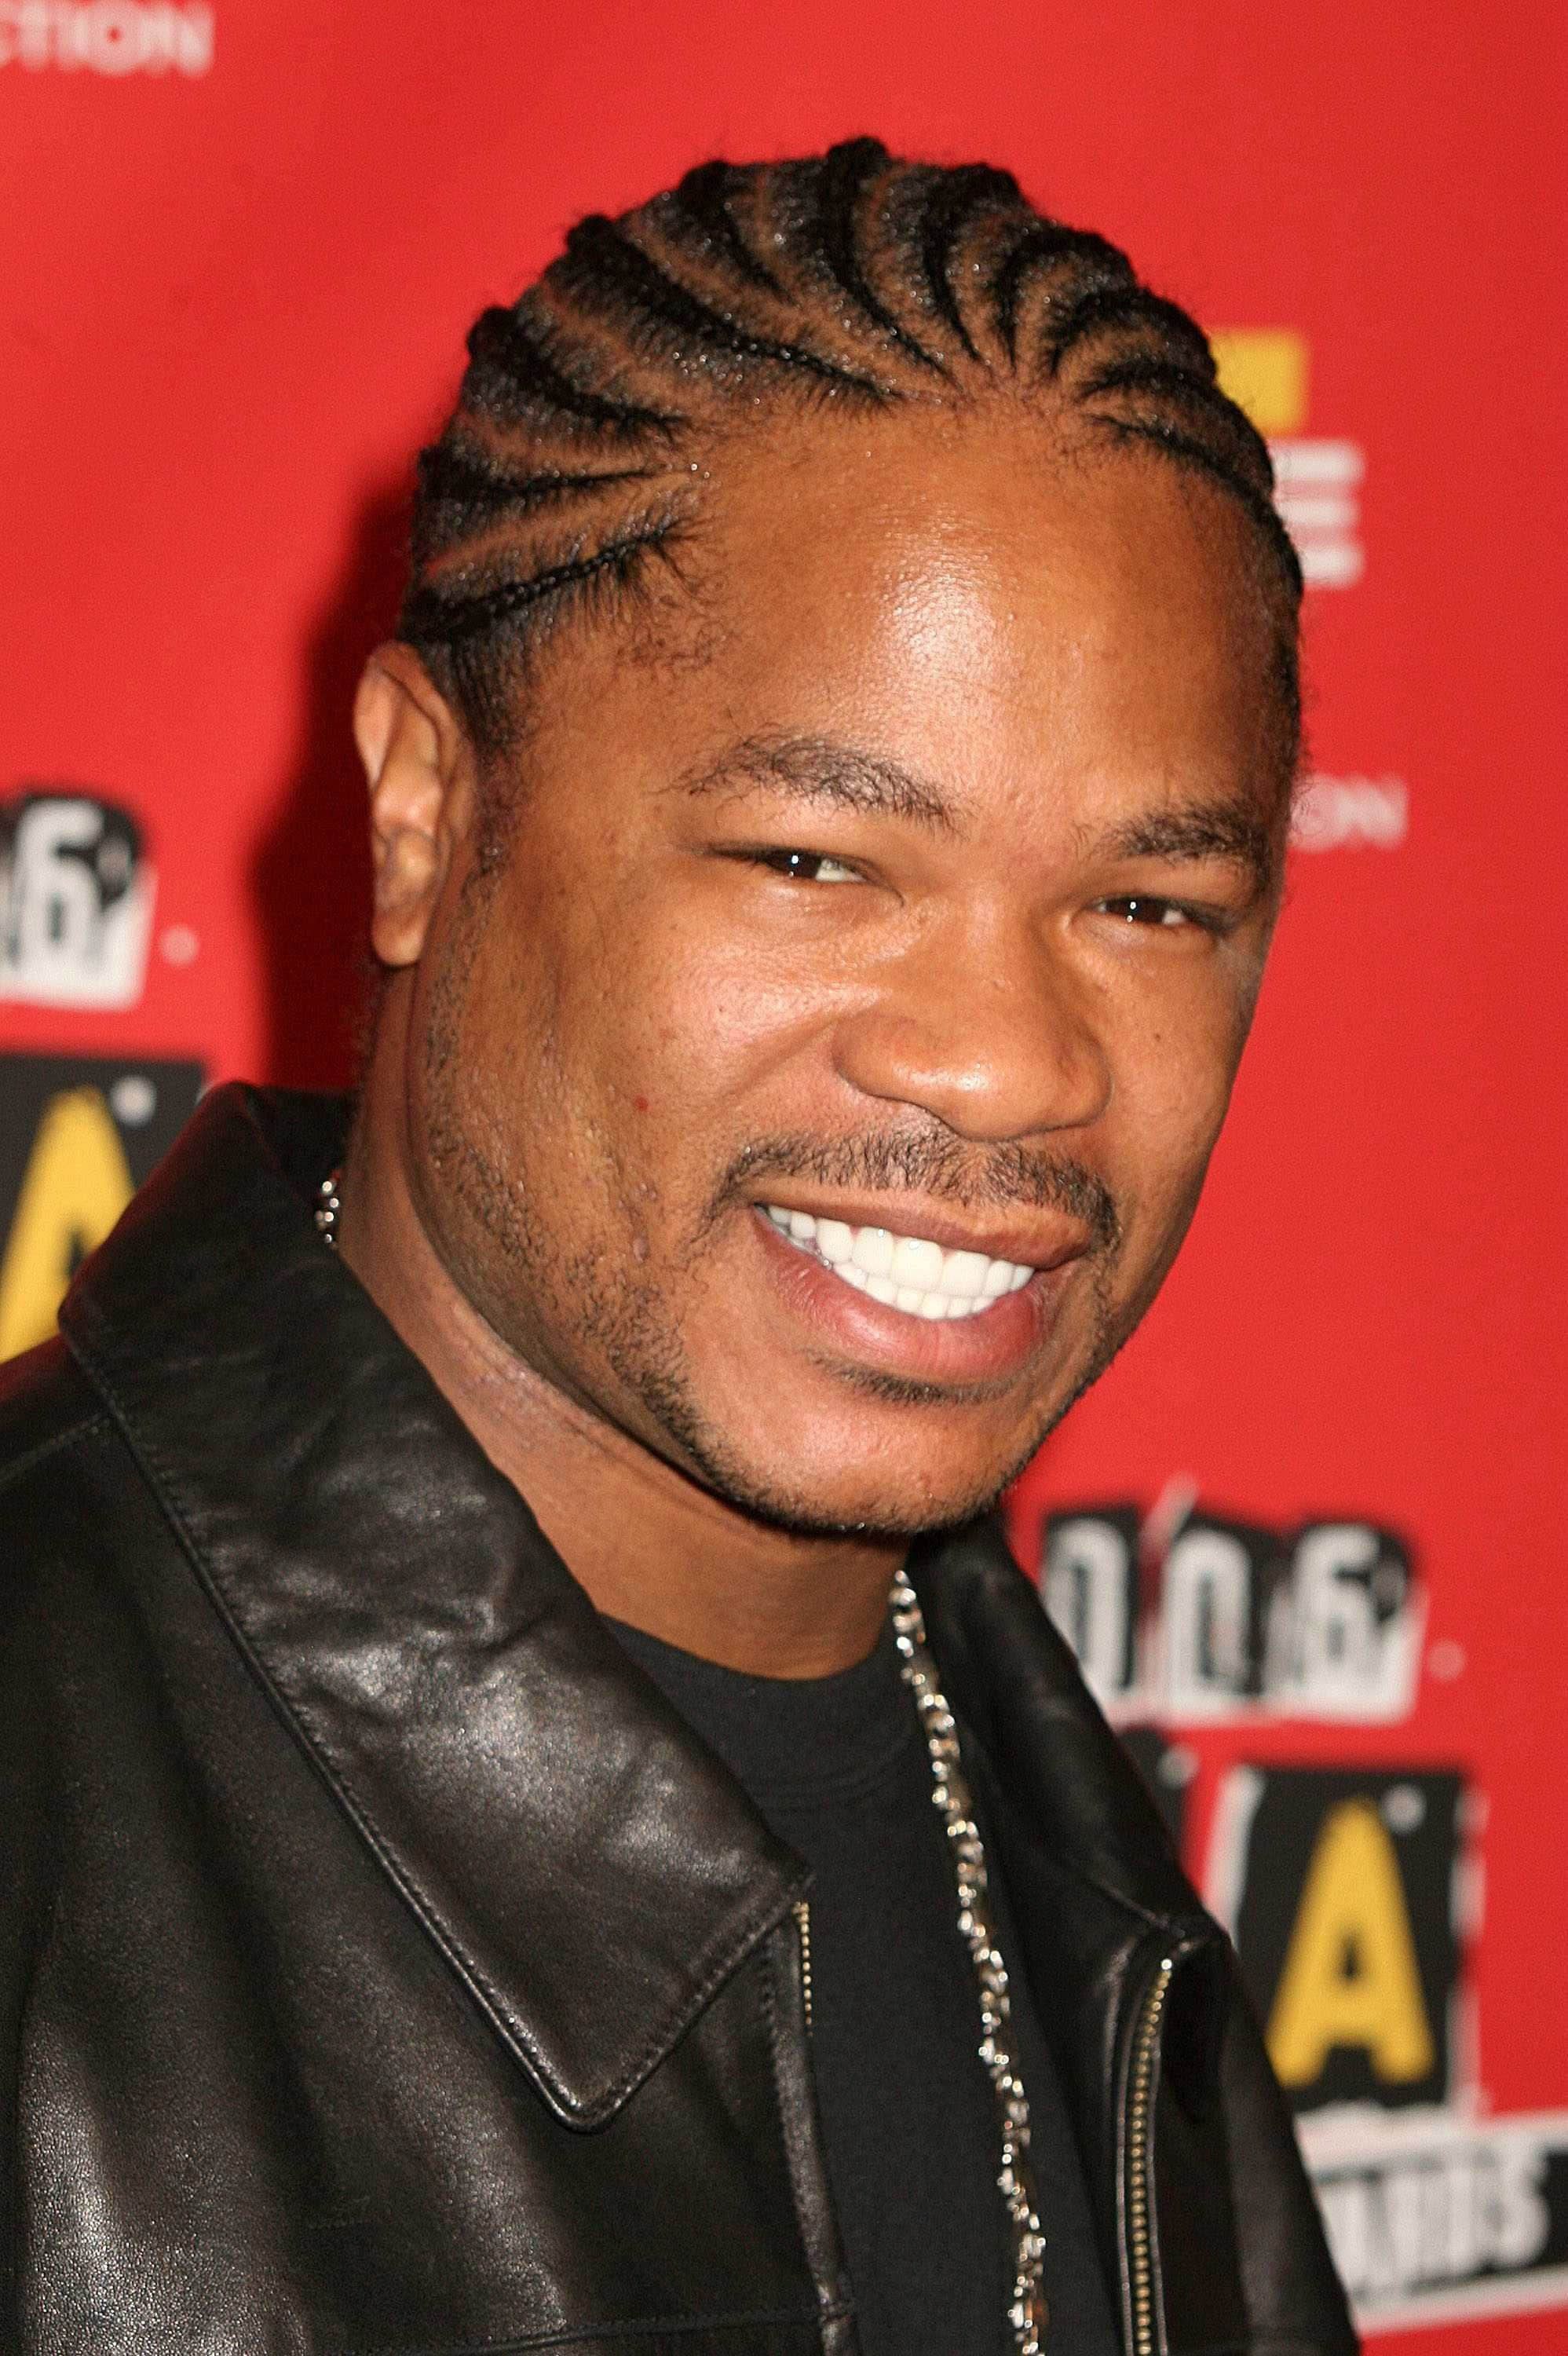 men with braids: All Things Hair - IMAGE - Xzibit braids cornrows